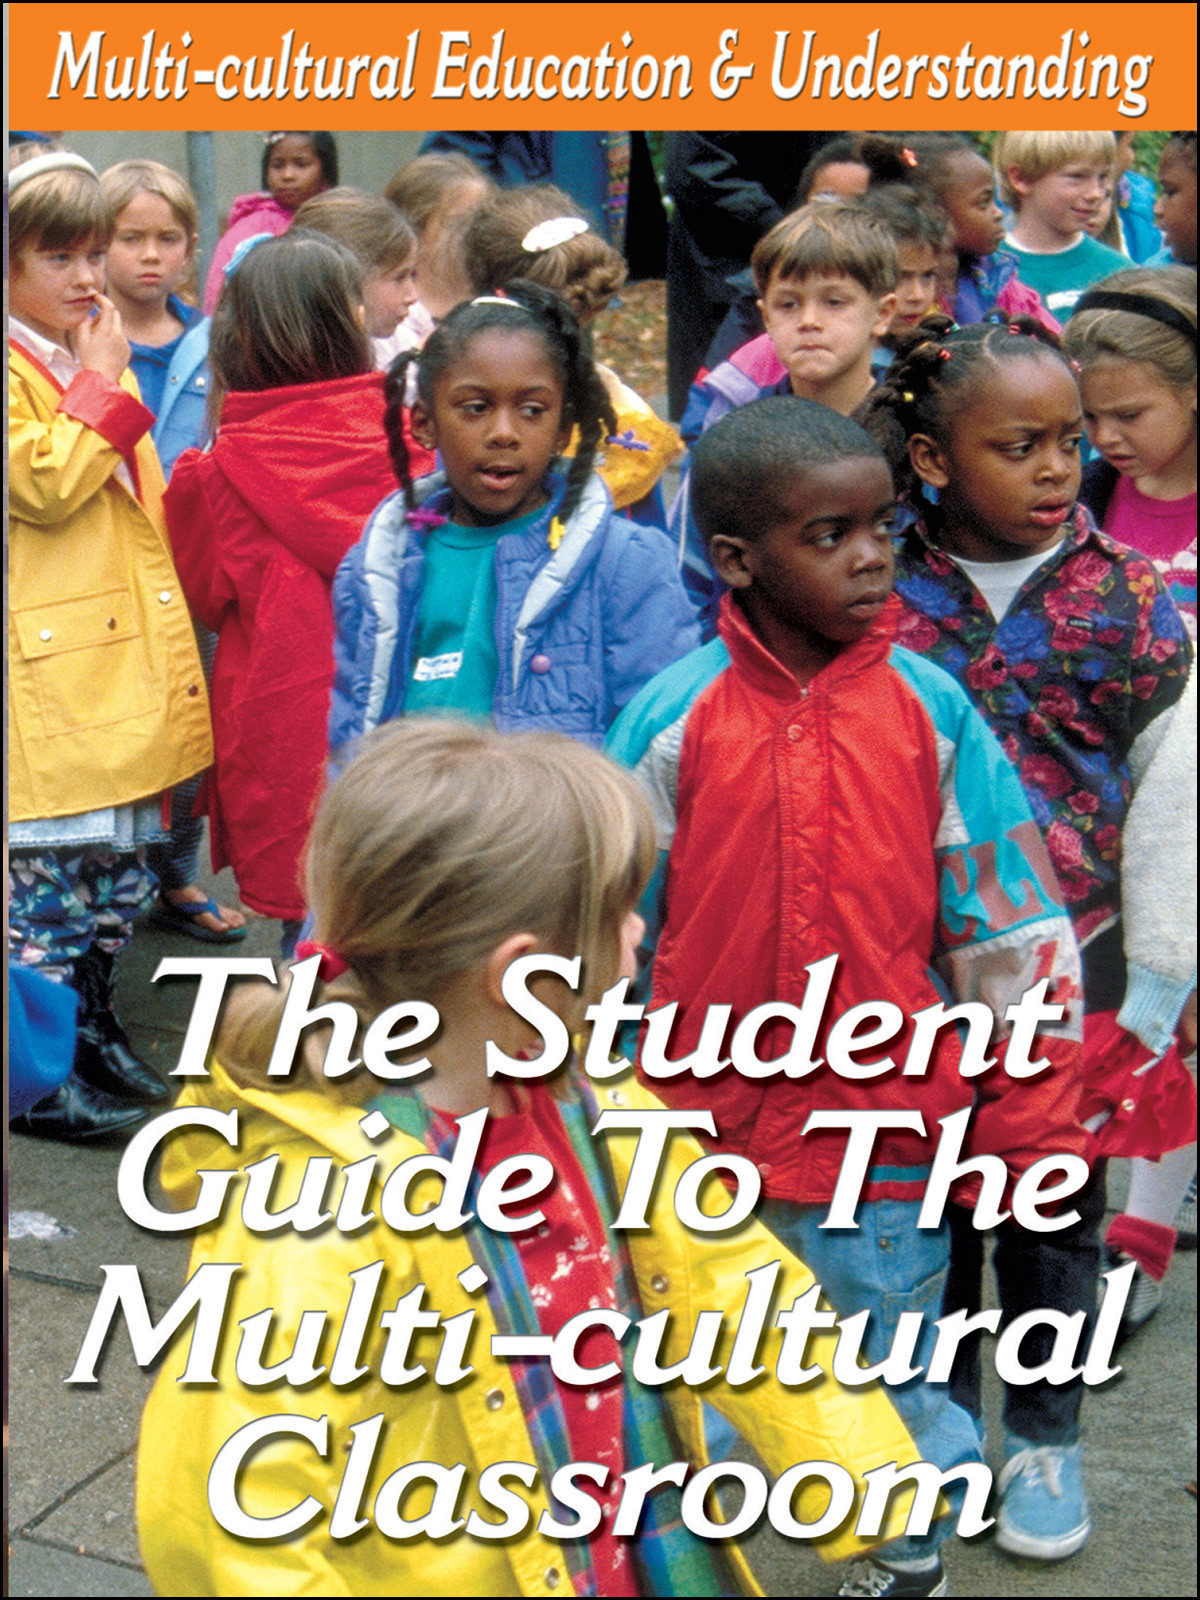 L929 - The Student Guide To The Ethnic Diversity in the Multi-cultural Classroom